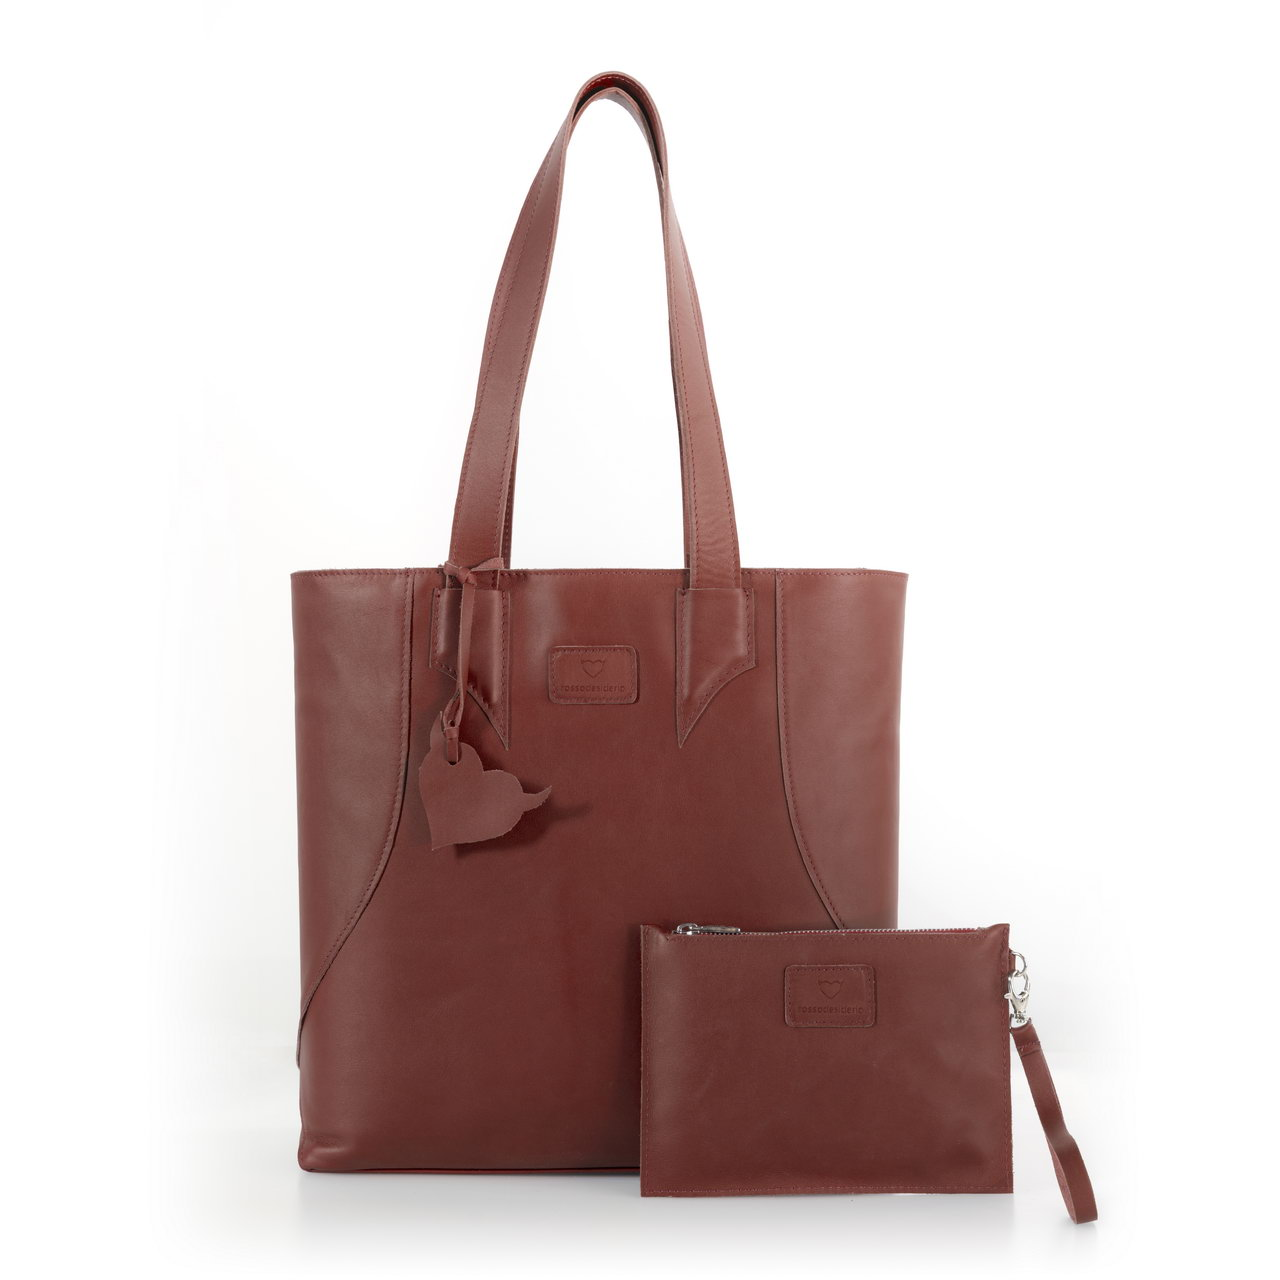 Brava Brown, shopper bag made with real leather